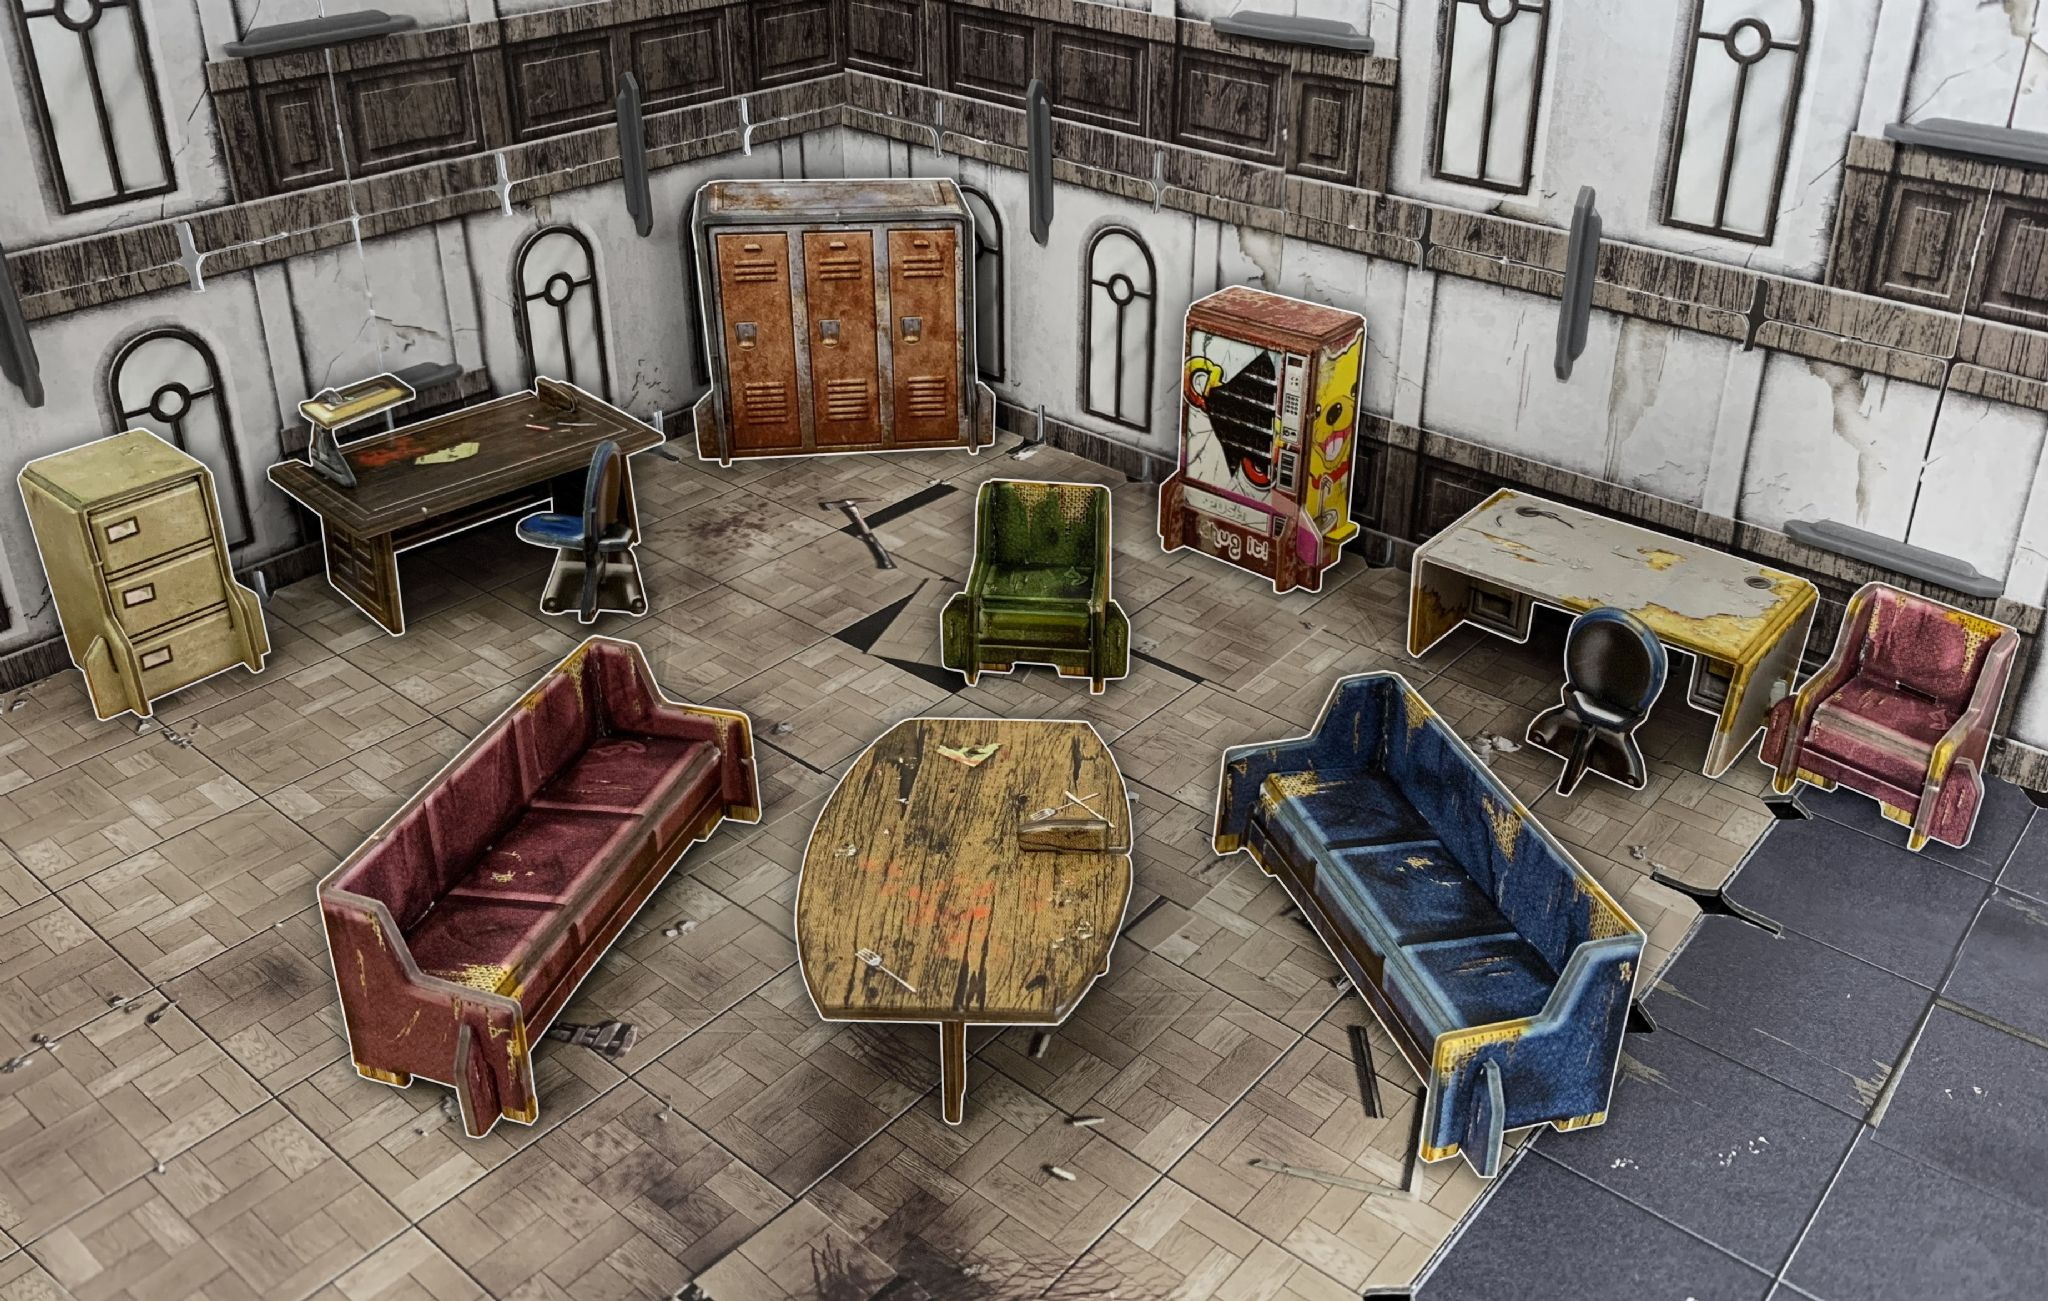 Battle Systems: Urban Furniture